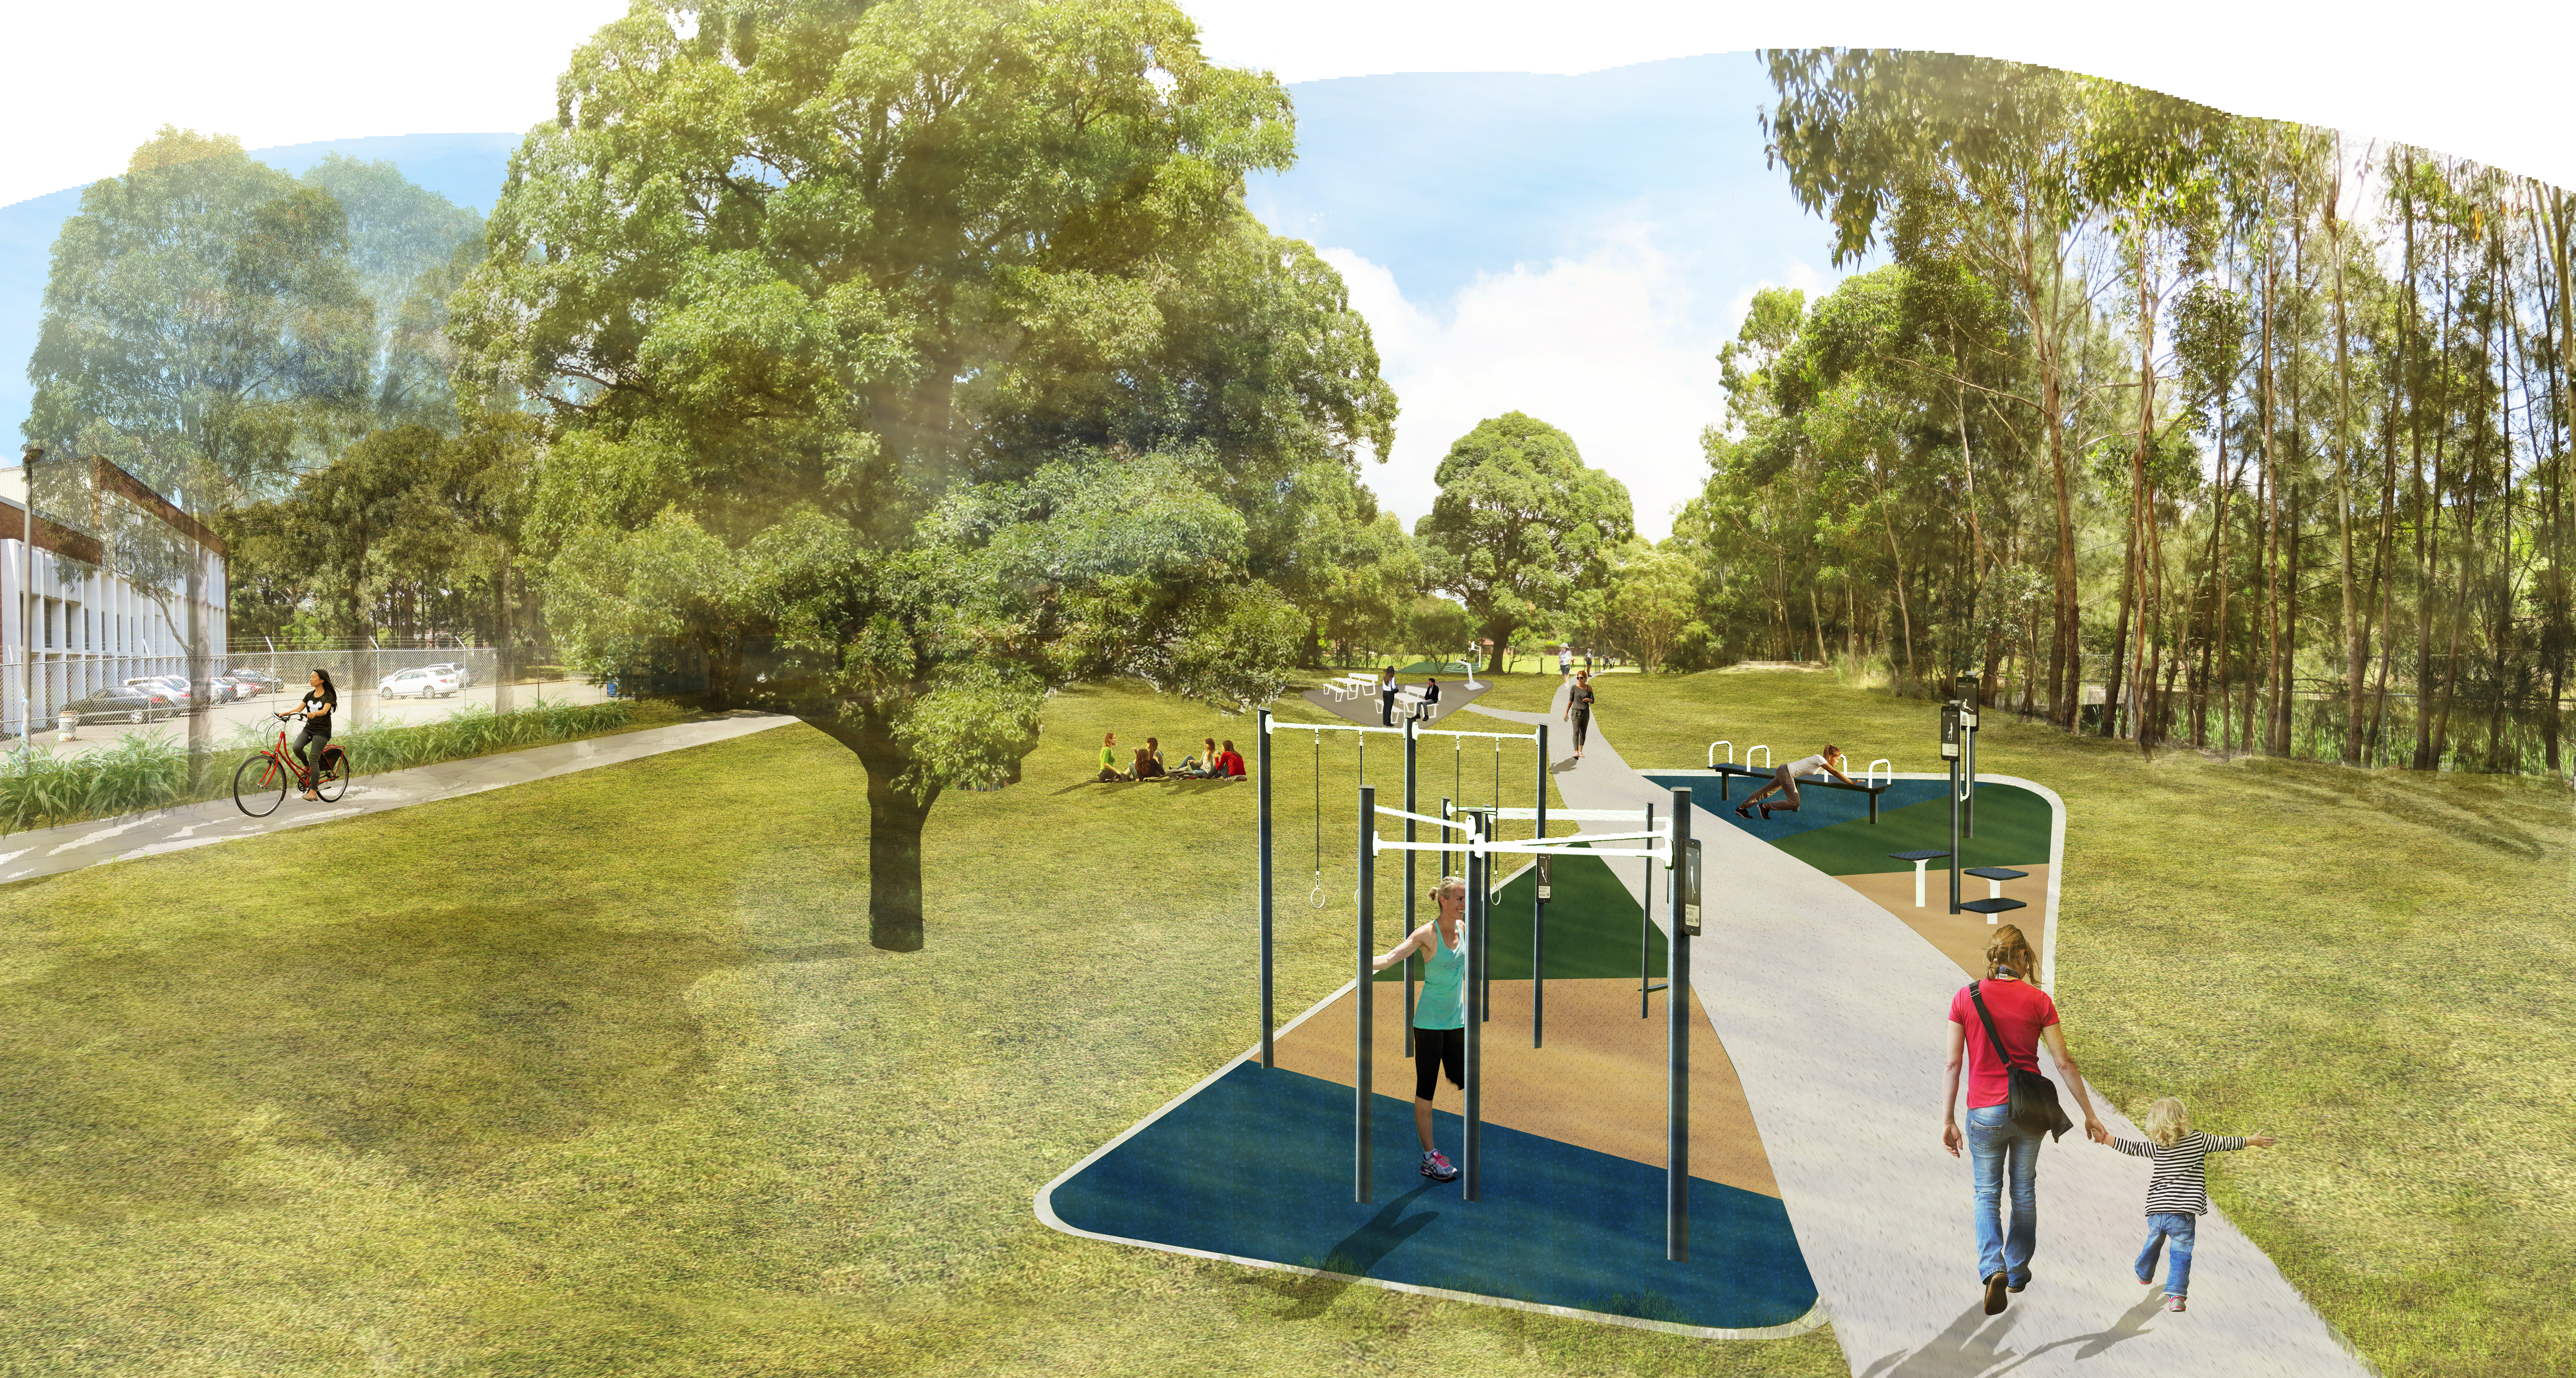 16. Basketball Courts, Seating, Bubblers And Fitness Equipment To Be Delivered At Tallawalla Reserve, Kingsgrove